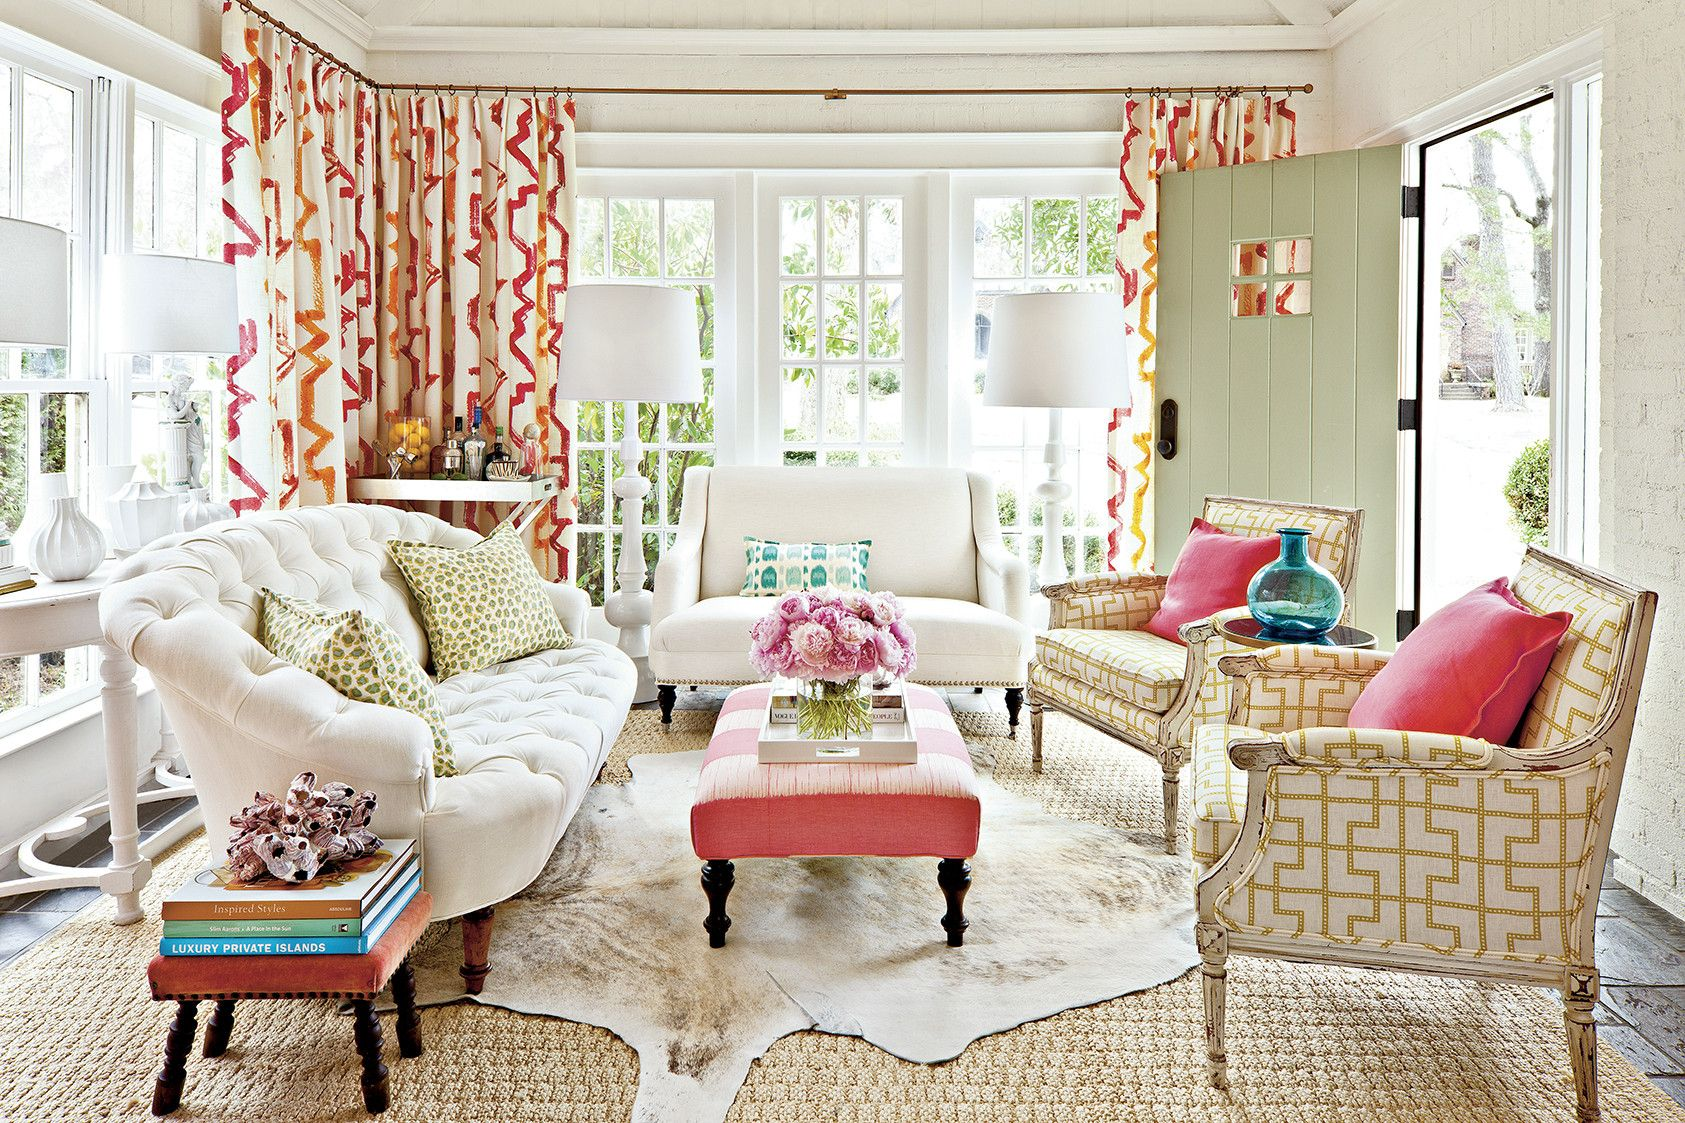 The Essentials Of Southern Girl Style Home Home Living Room Home Decor Southern living living rooms